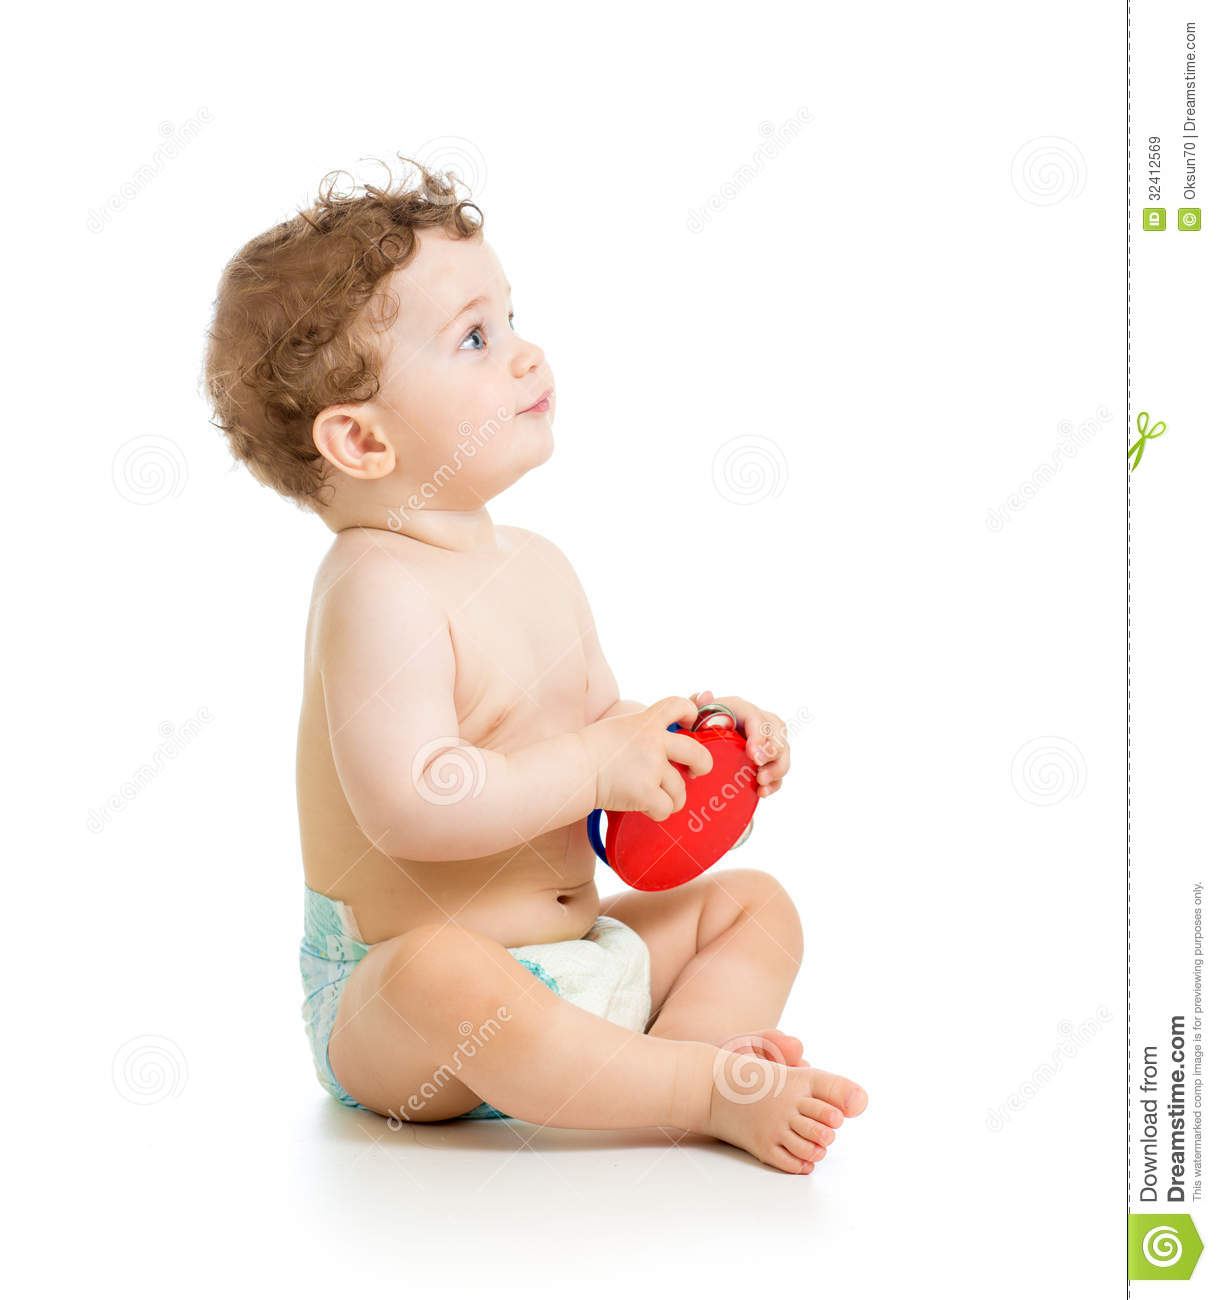 Musical Toys For Toddlers Boys : Baby boy playing musical toy royalty free stock images